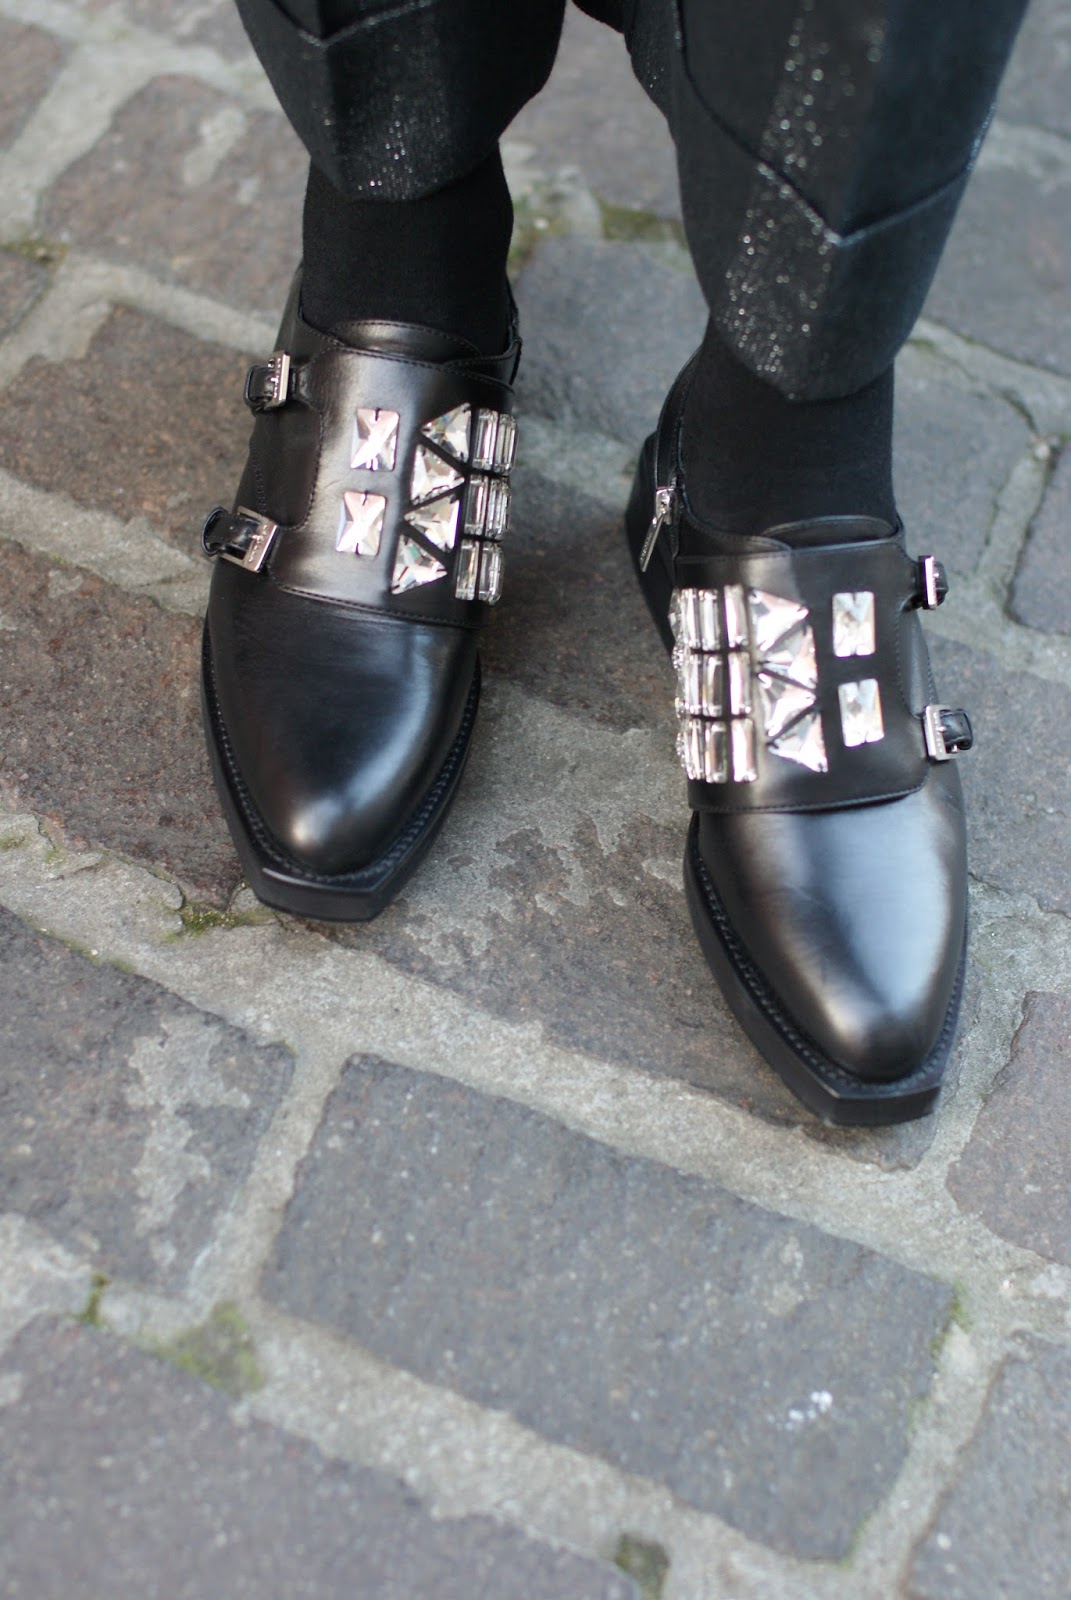 Elegant Le Silla jeweled brogues on Fashion and Cookies fashion blog, fashion blogger style